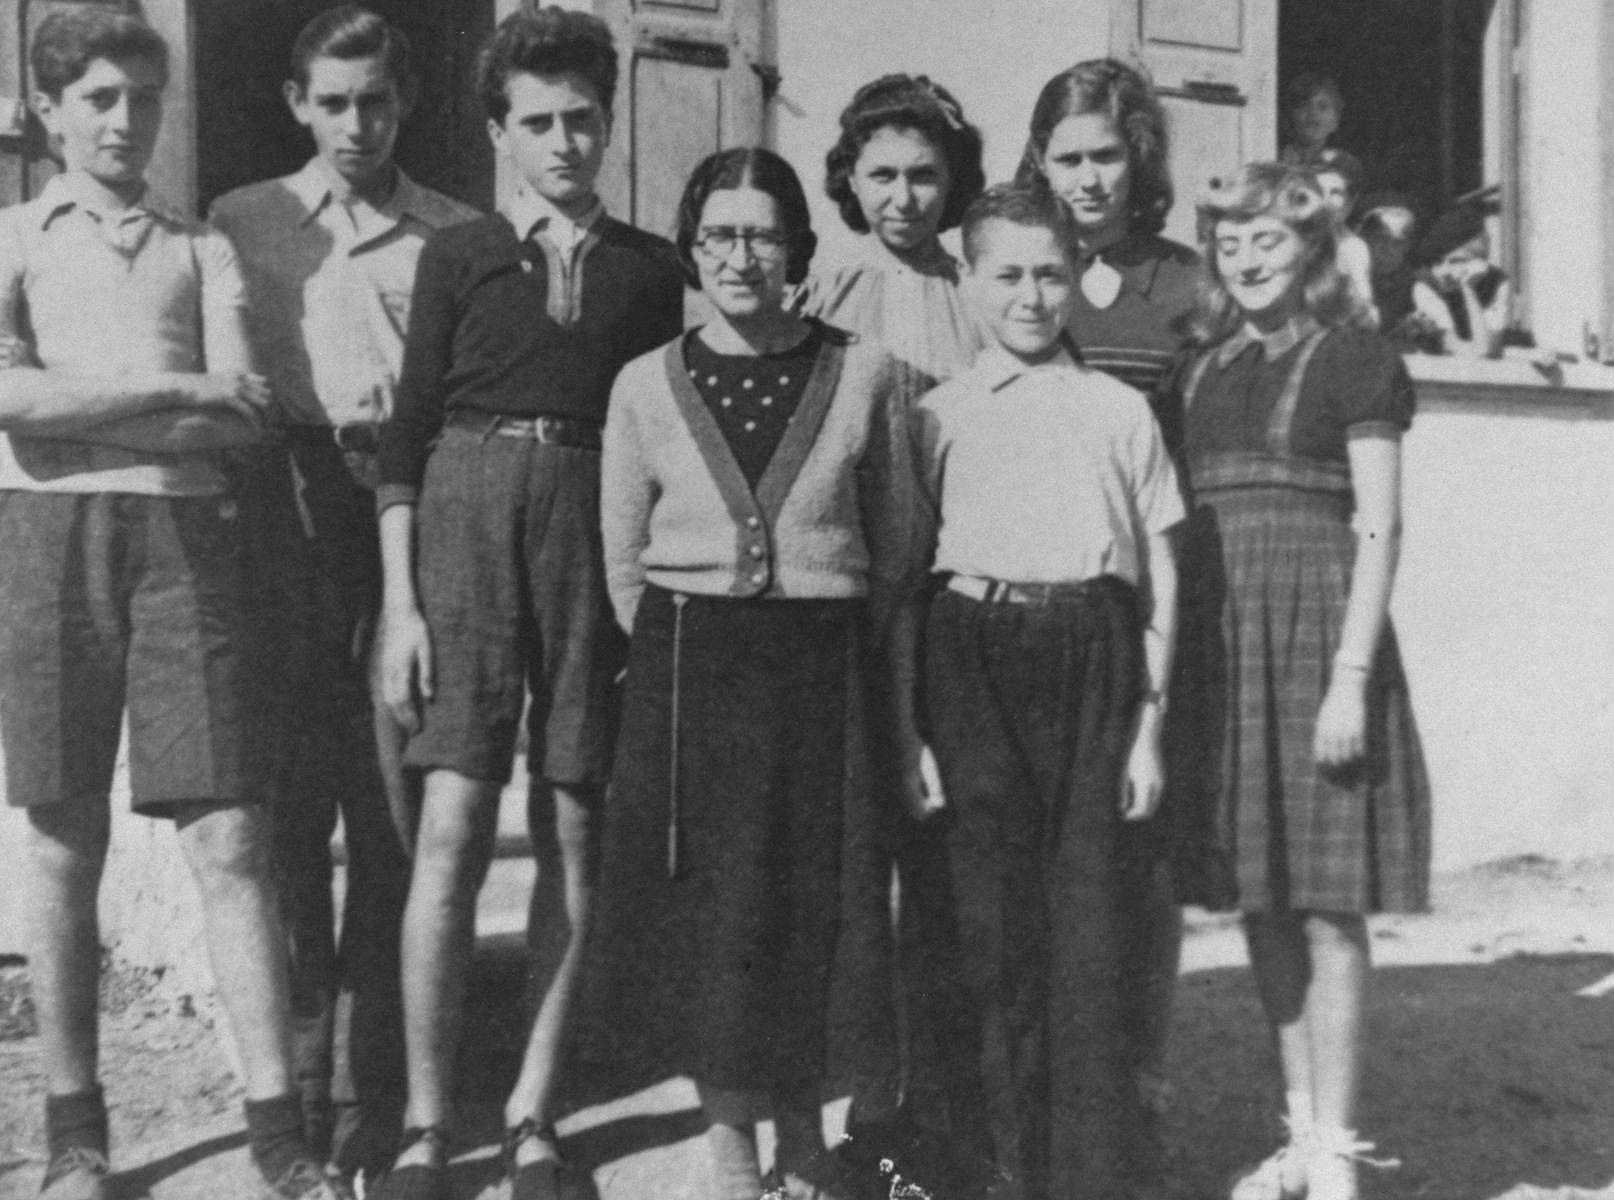 Jewish youth living in the La Guespy children's home in Le Chambon-sur-Lignon, pose with Juliette Usach.   Pictured from left to right are: Joseph Atlas (Poland), Jacob Lewin (Wurzburg), Victor Atlas (Poland), Dr. Juliette Usach (in glasses), Lily Braun, Manfred Goldberger, Hanne Hirsch (Karlsruhe), and Wiltrude Hene (Freiburg).